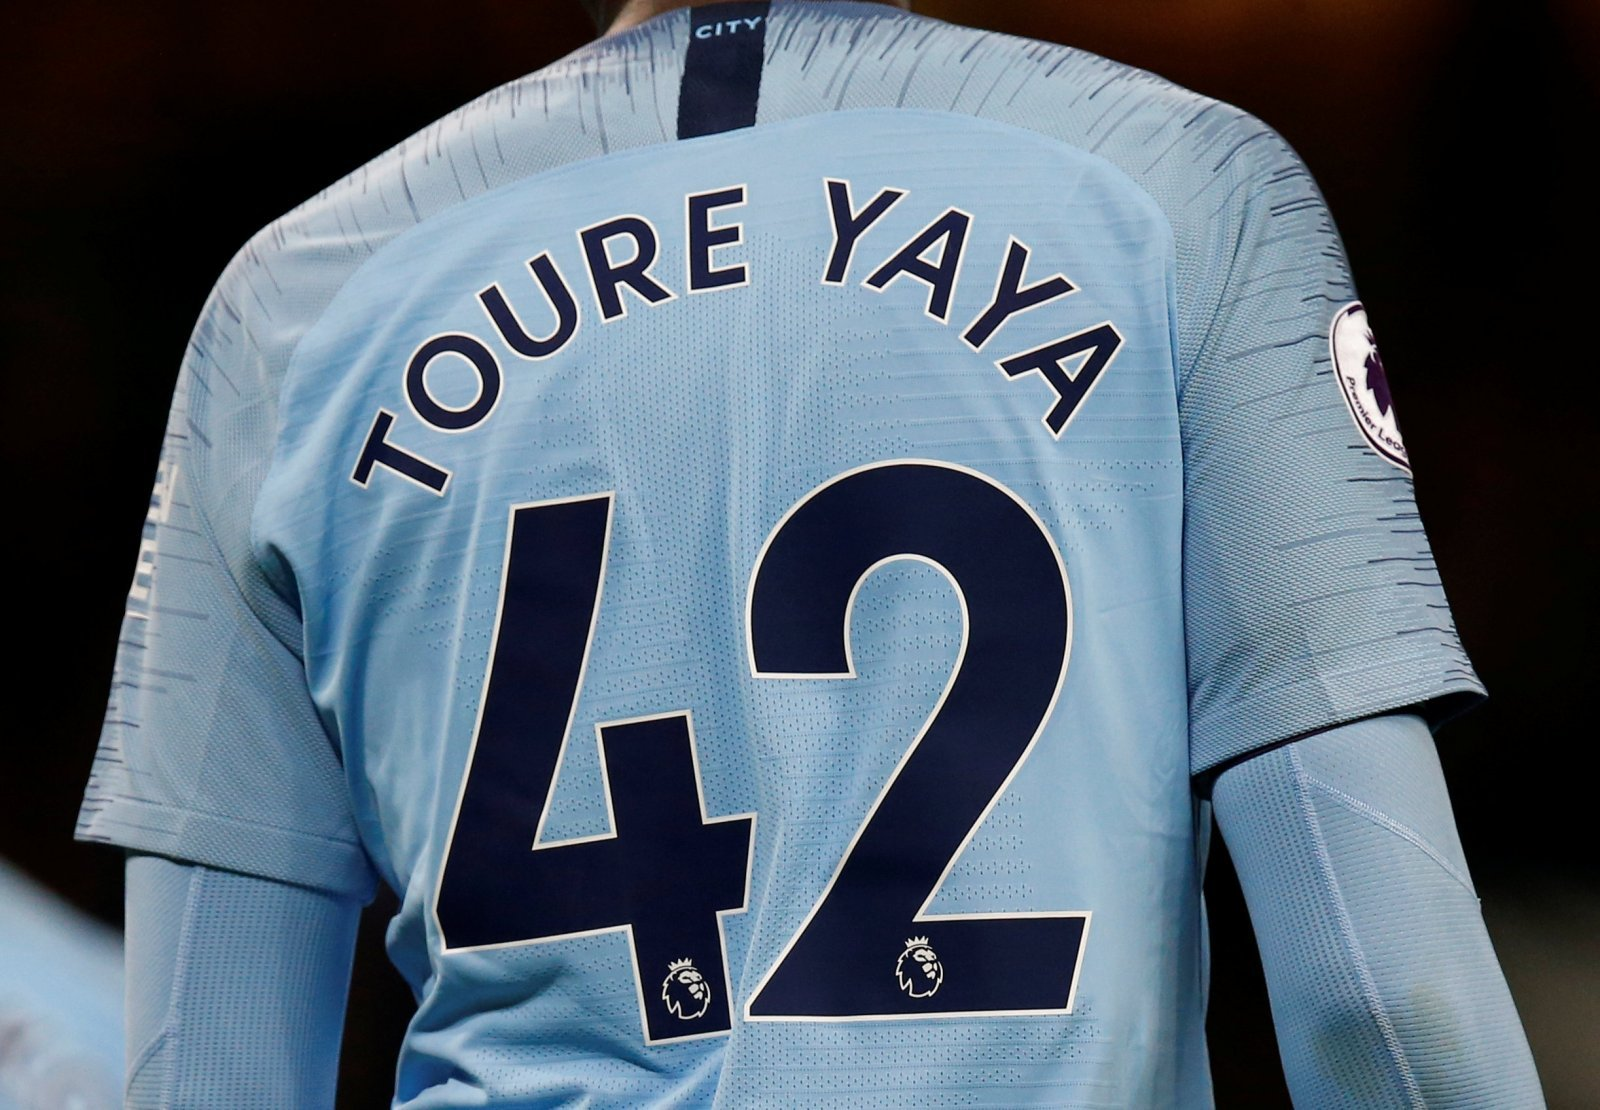 Manchester City: Fans pay tribute to Yaya Toure after nostalgic club post